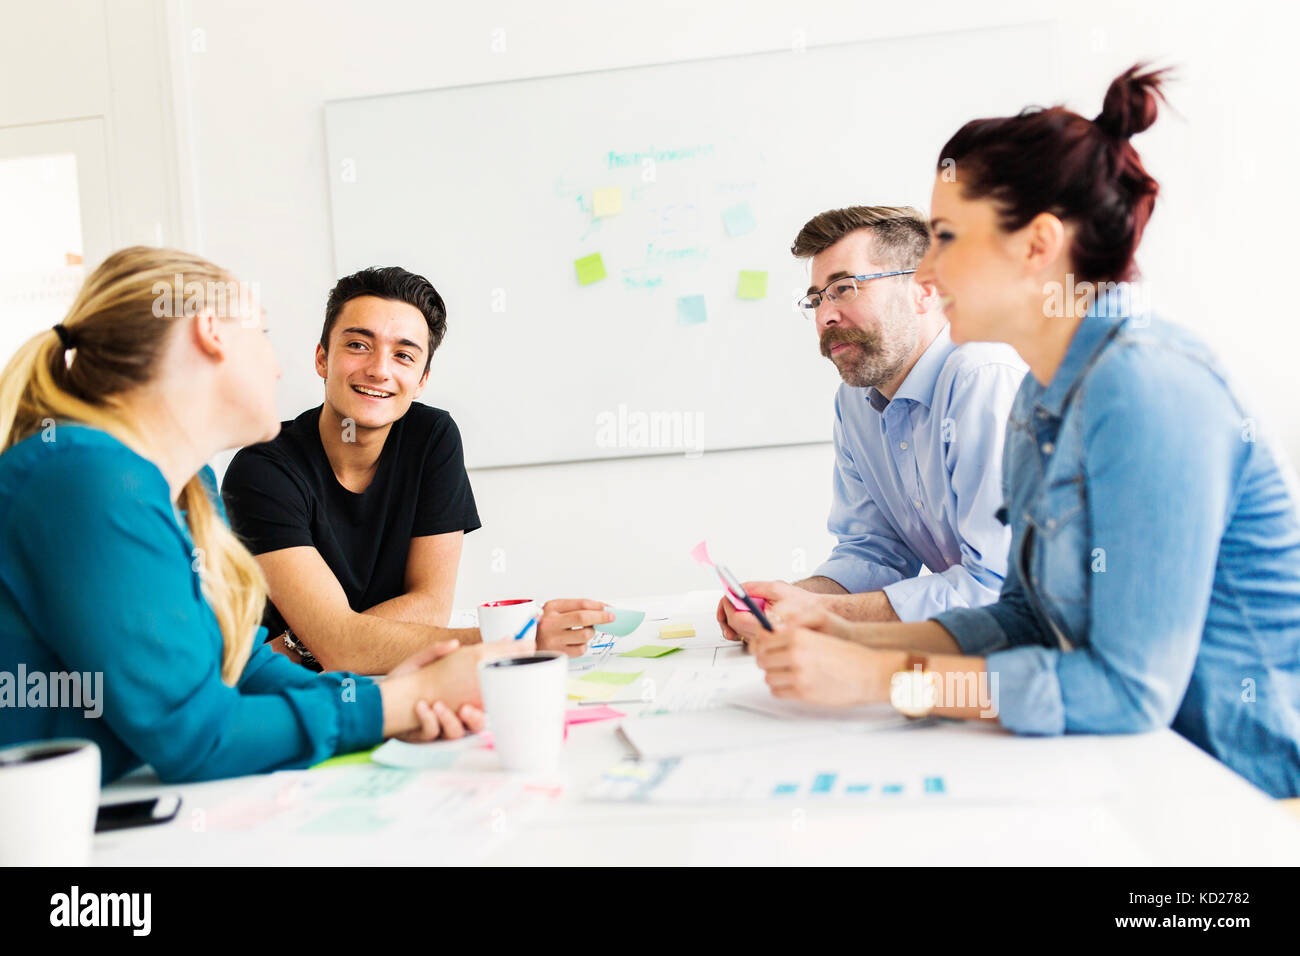 Colleagues talking during business meeting - Stock Image